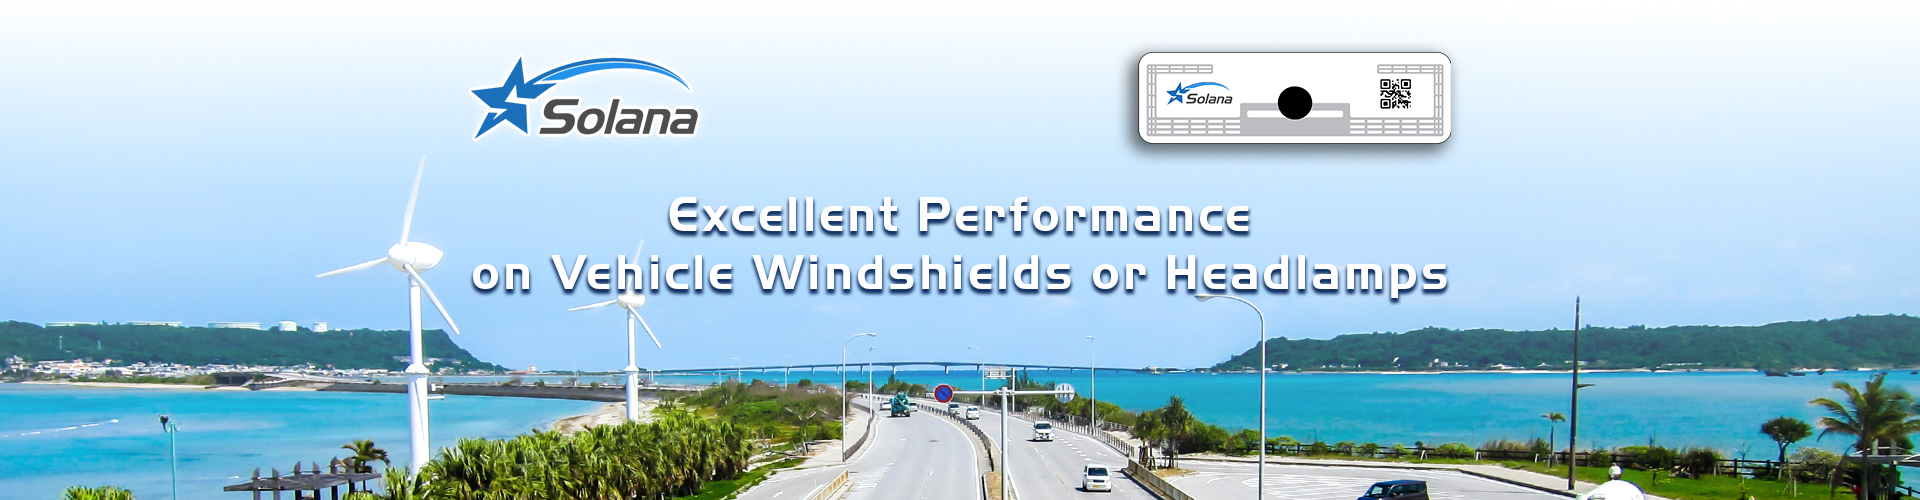 Solana Excellent Performance on Vehicle Windshields or Headlamps